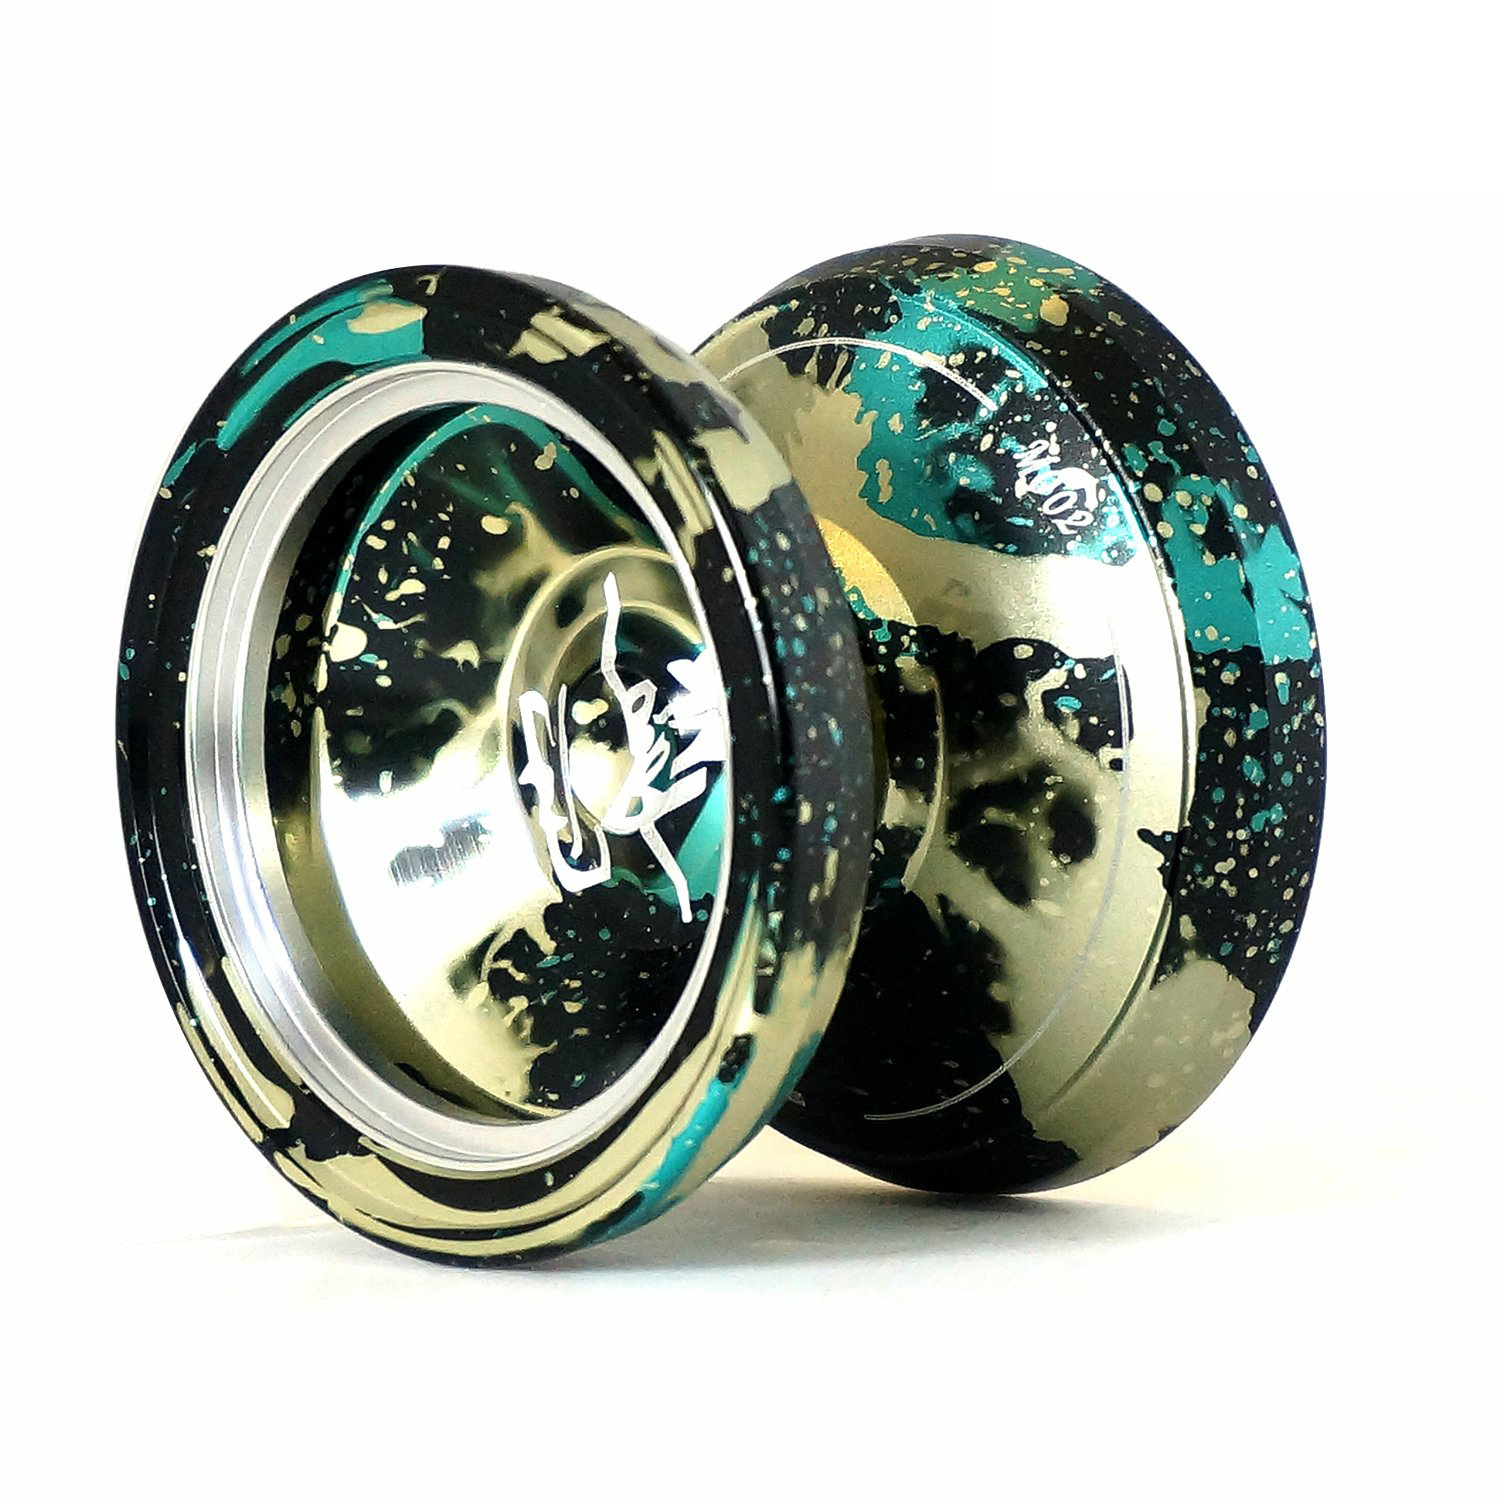 New MAGIC YOYO style M002 Acid Wash Color Anodized Surface and Stainless Center Bearing футболка glamorous ac1239 black acid wash